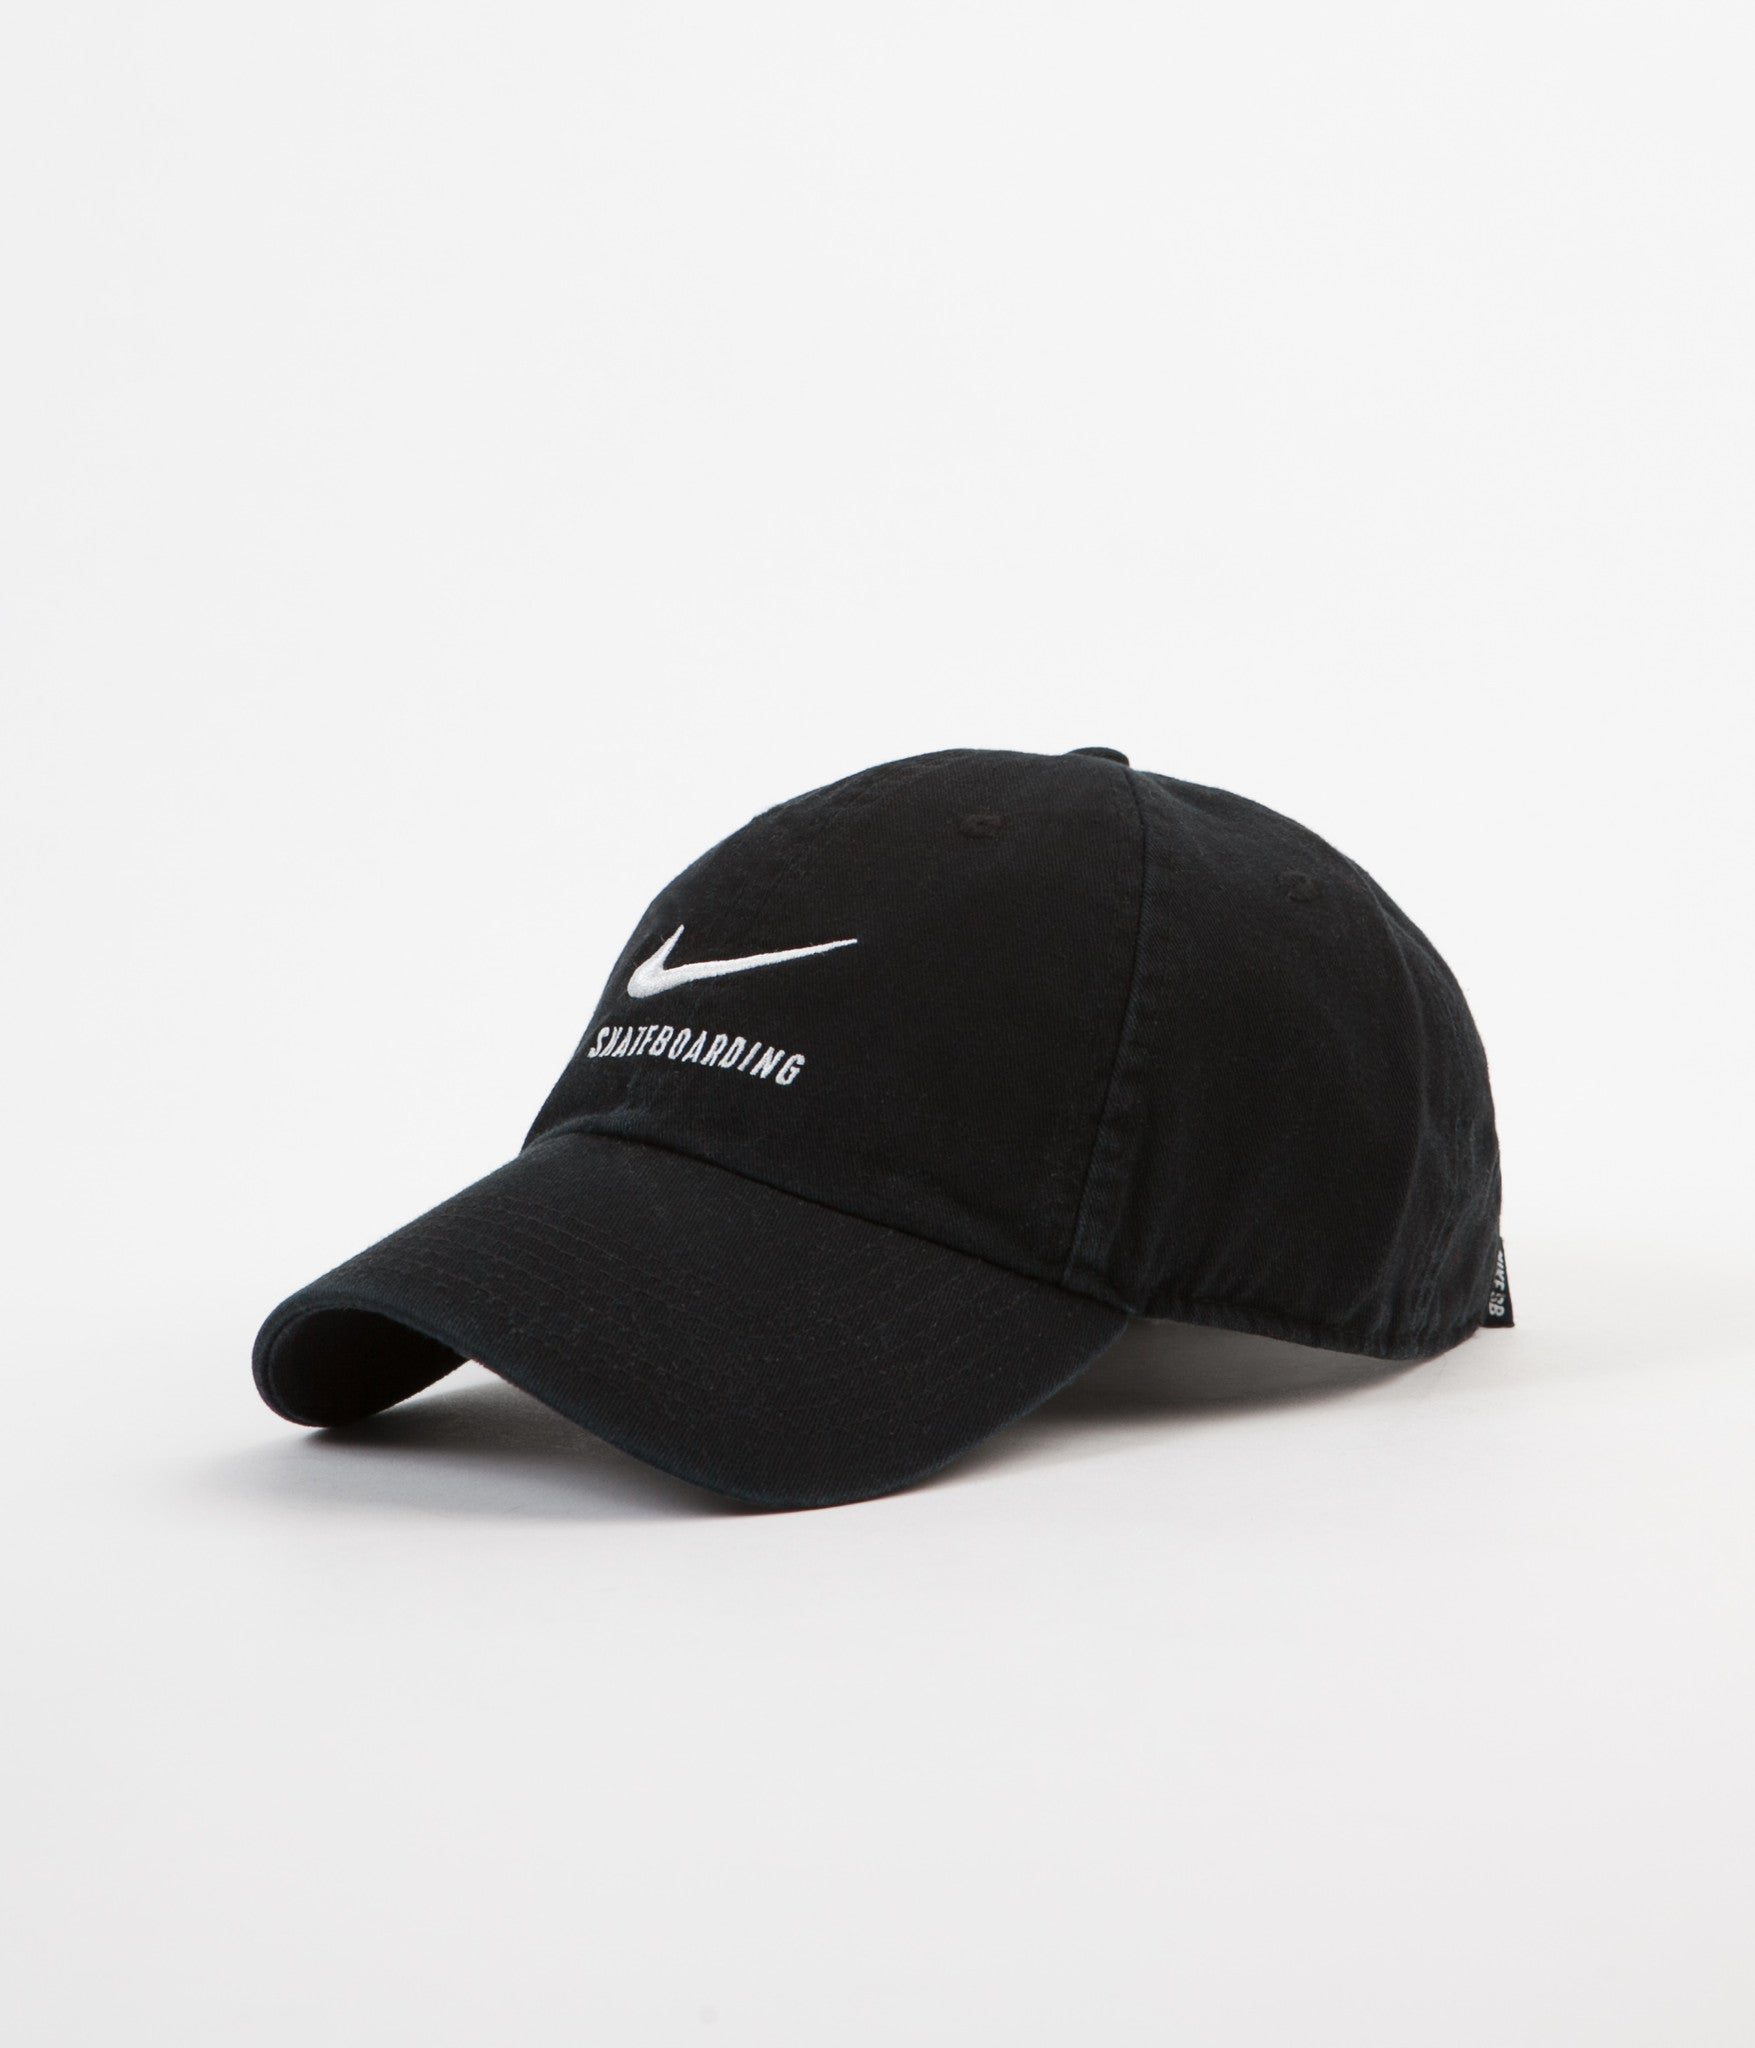 Nike SB H86 Cap - Black / White